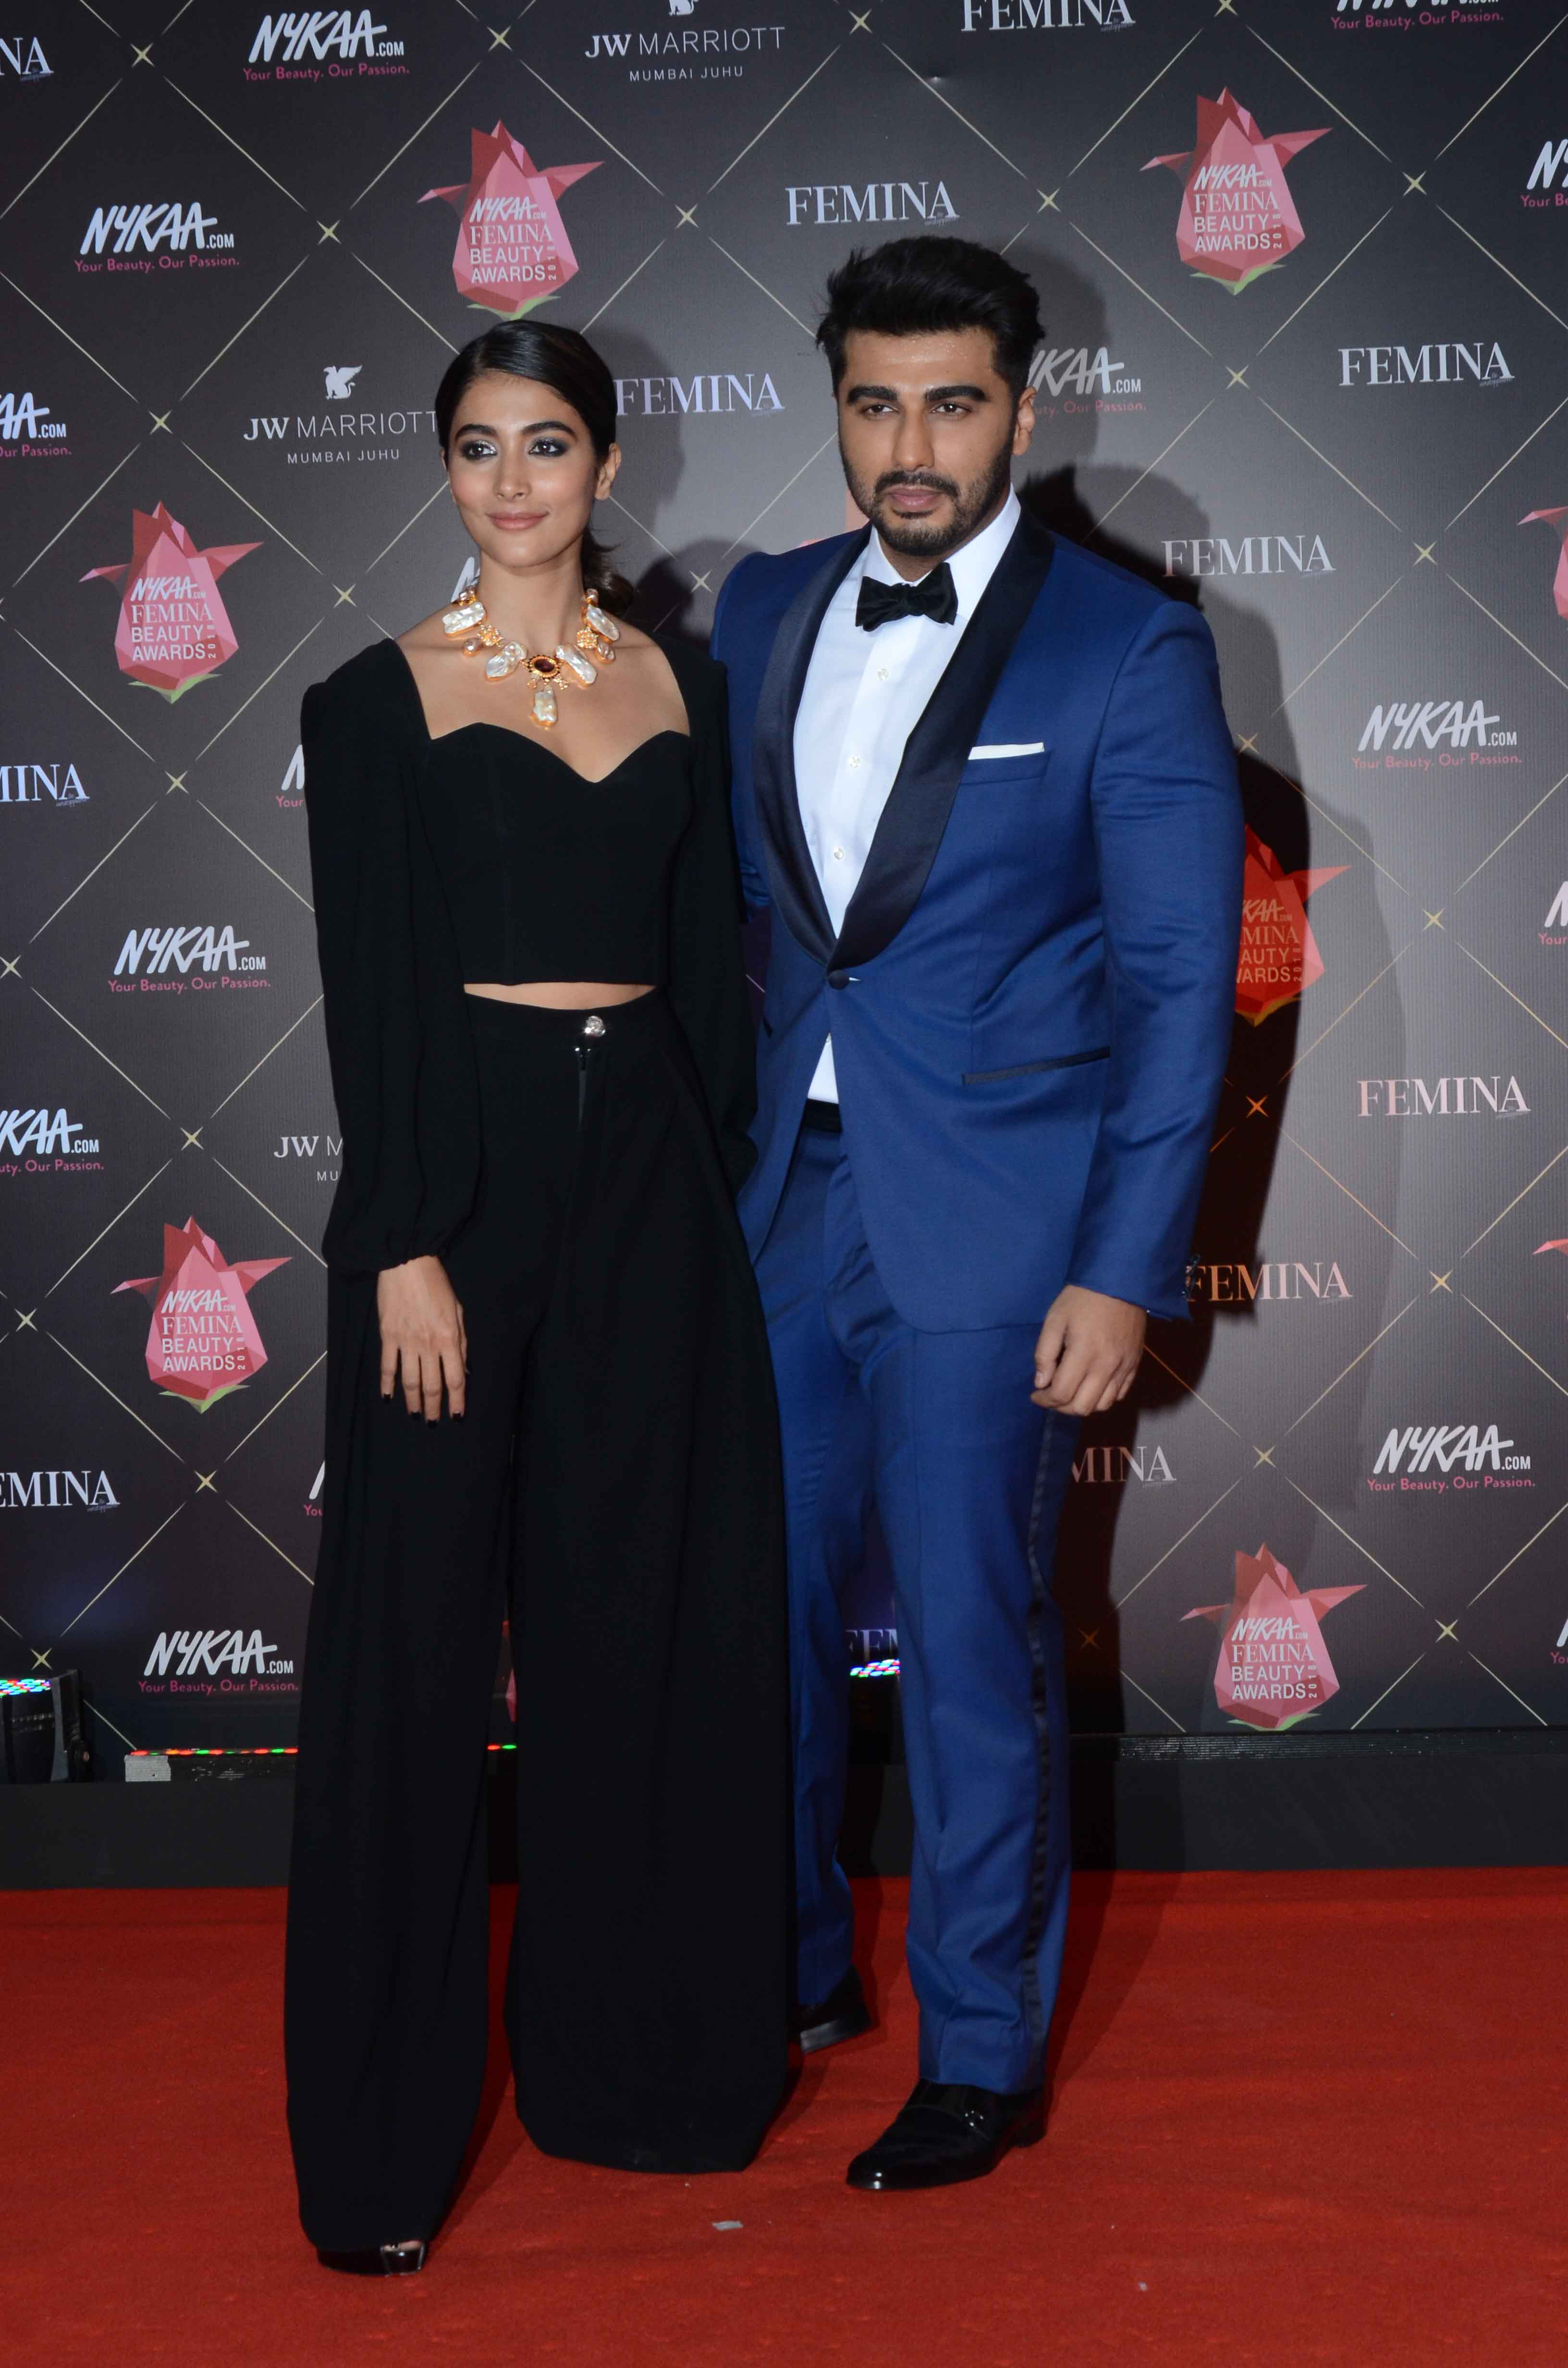 Pooja Hegde and Arjun Kapoor